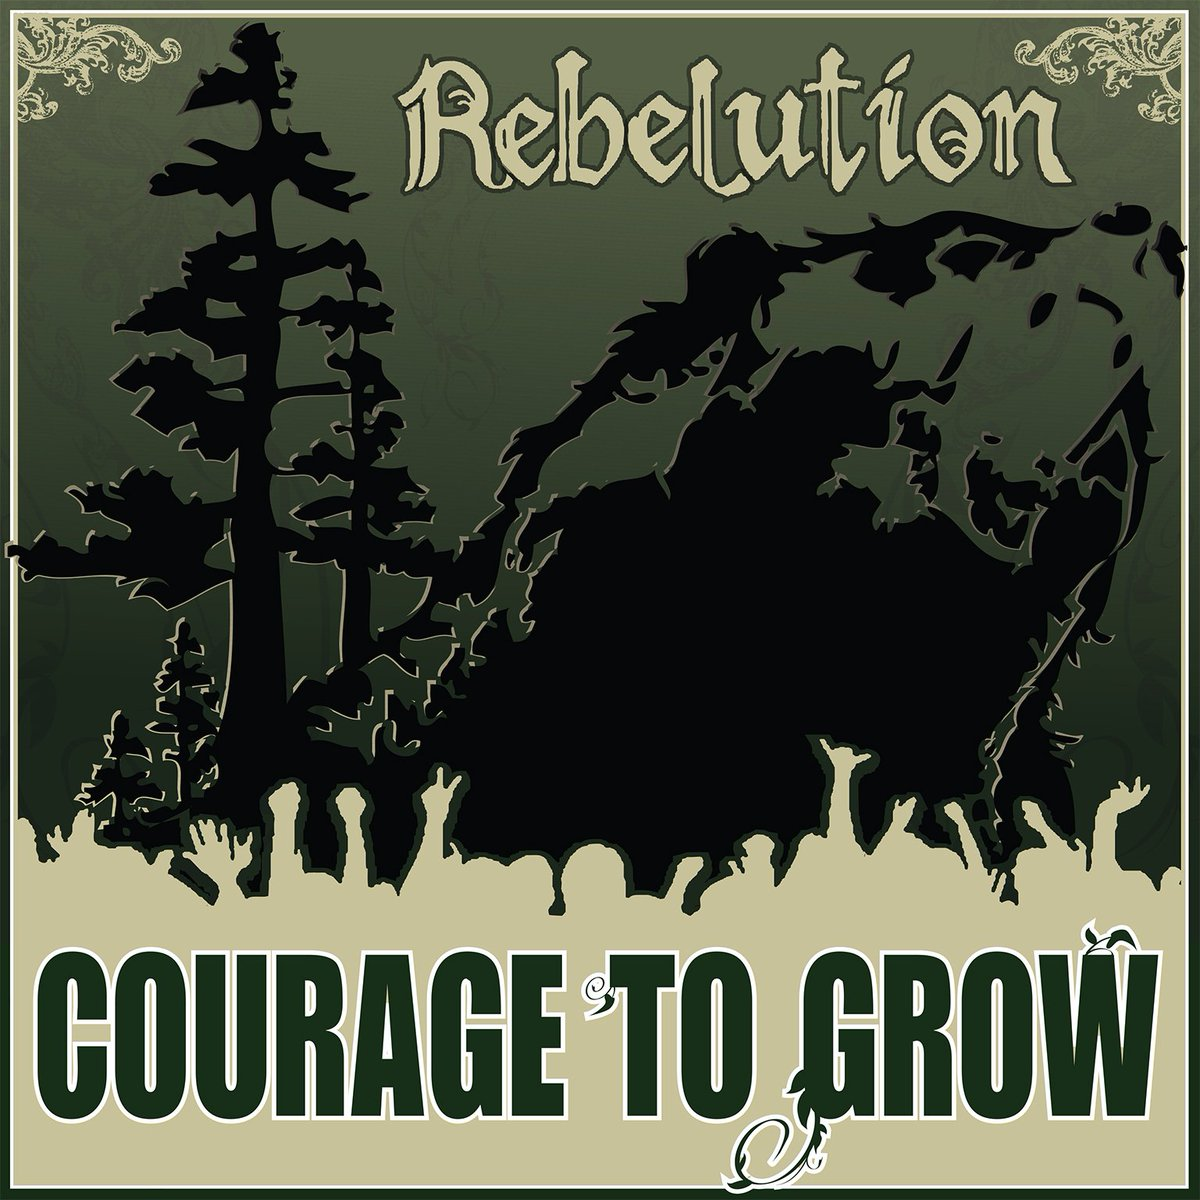 Courage To Grow was released 9 years ago today! #Rebelution https://t.co/IzjR6vNWeU